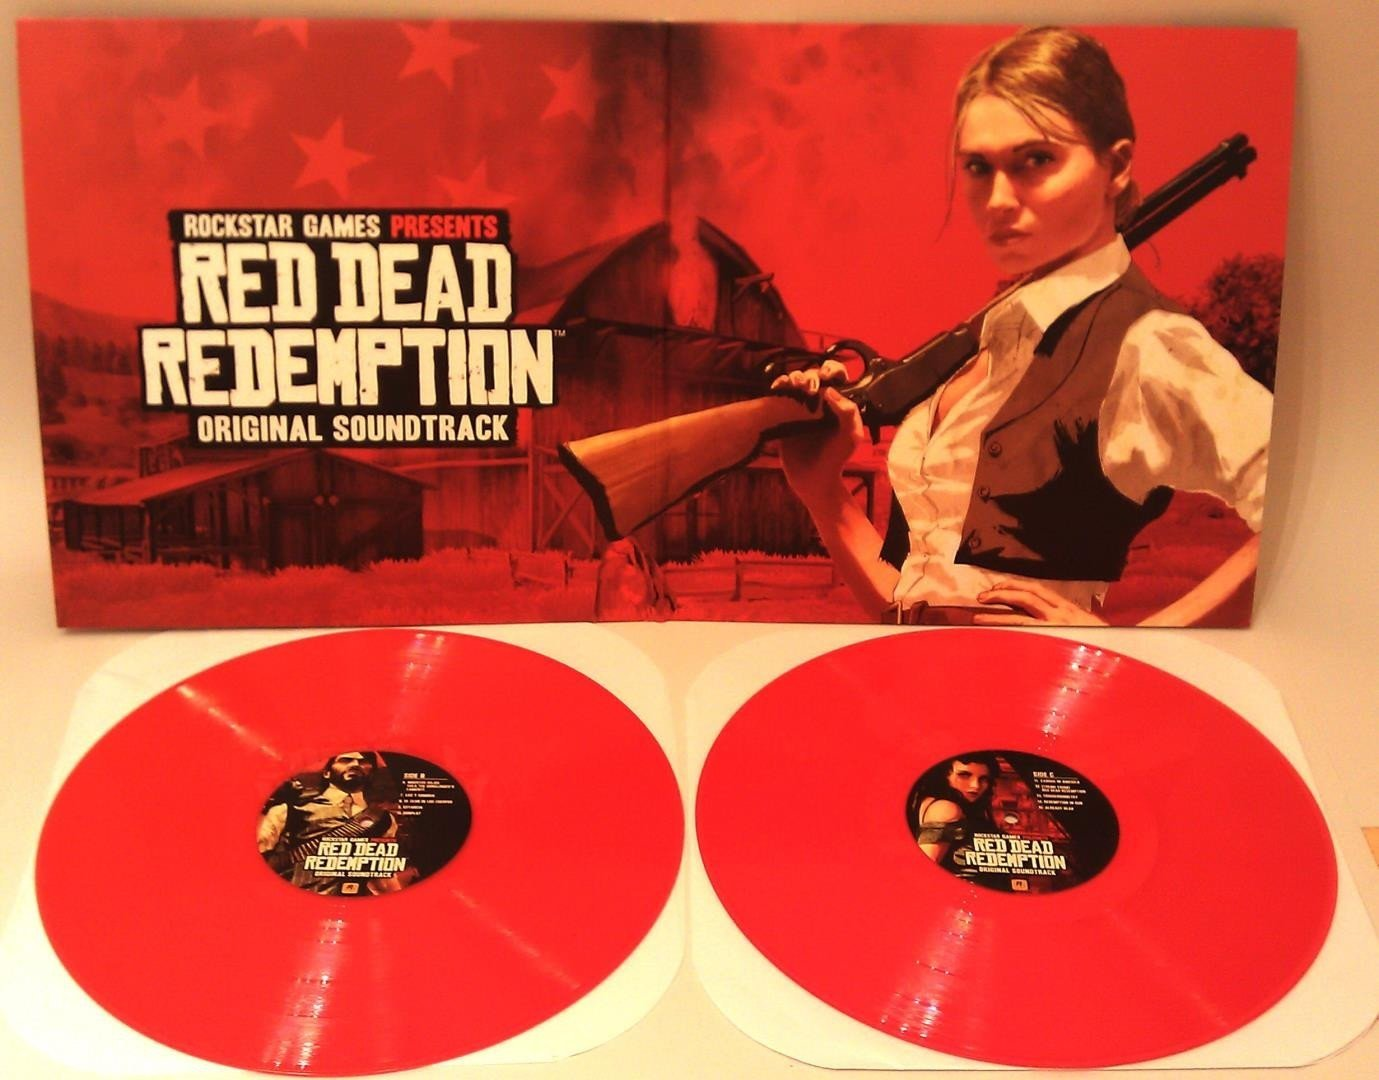 The Red Dead Redemption 2 soundtrack was originally made available on vinyl, but can now be streamed digitally.